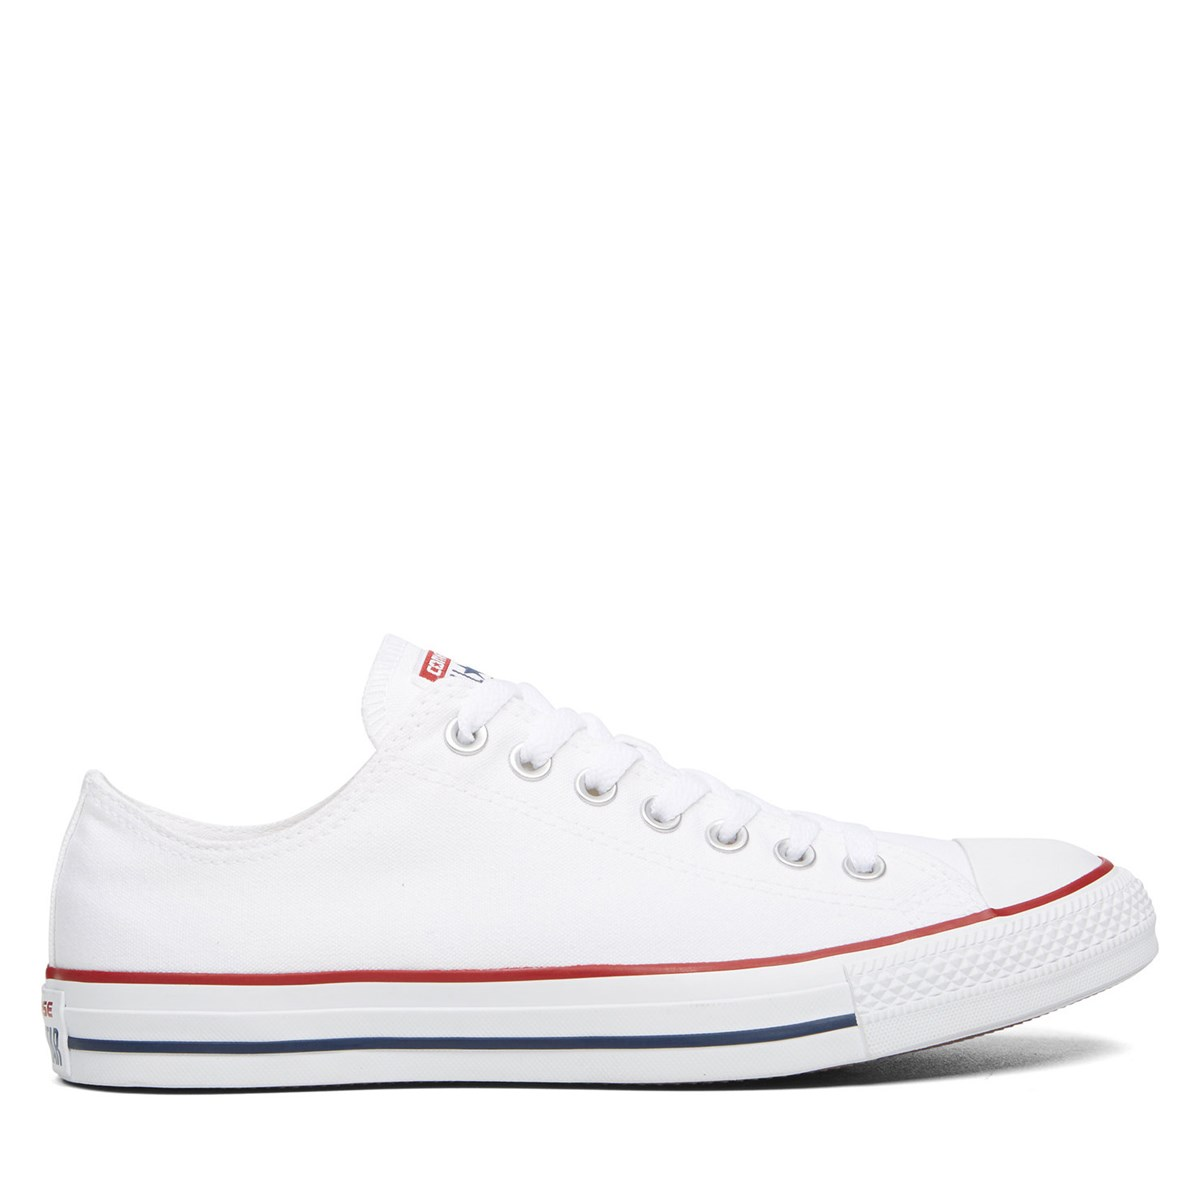 Men's Chuck Taylor Classic Low Top Sneakers in White